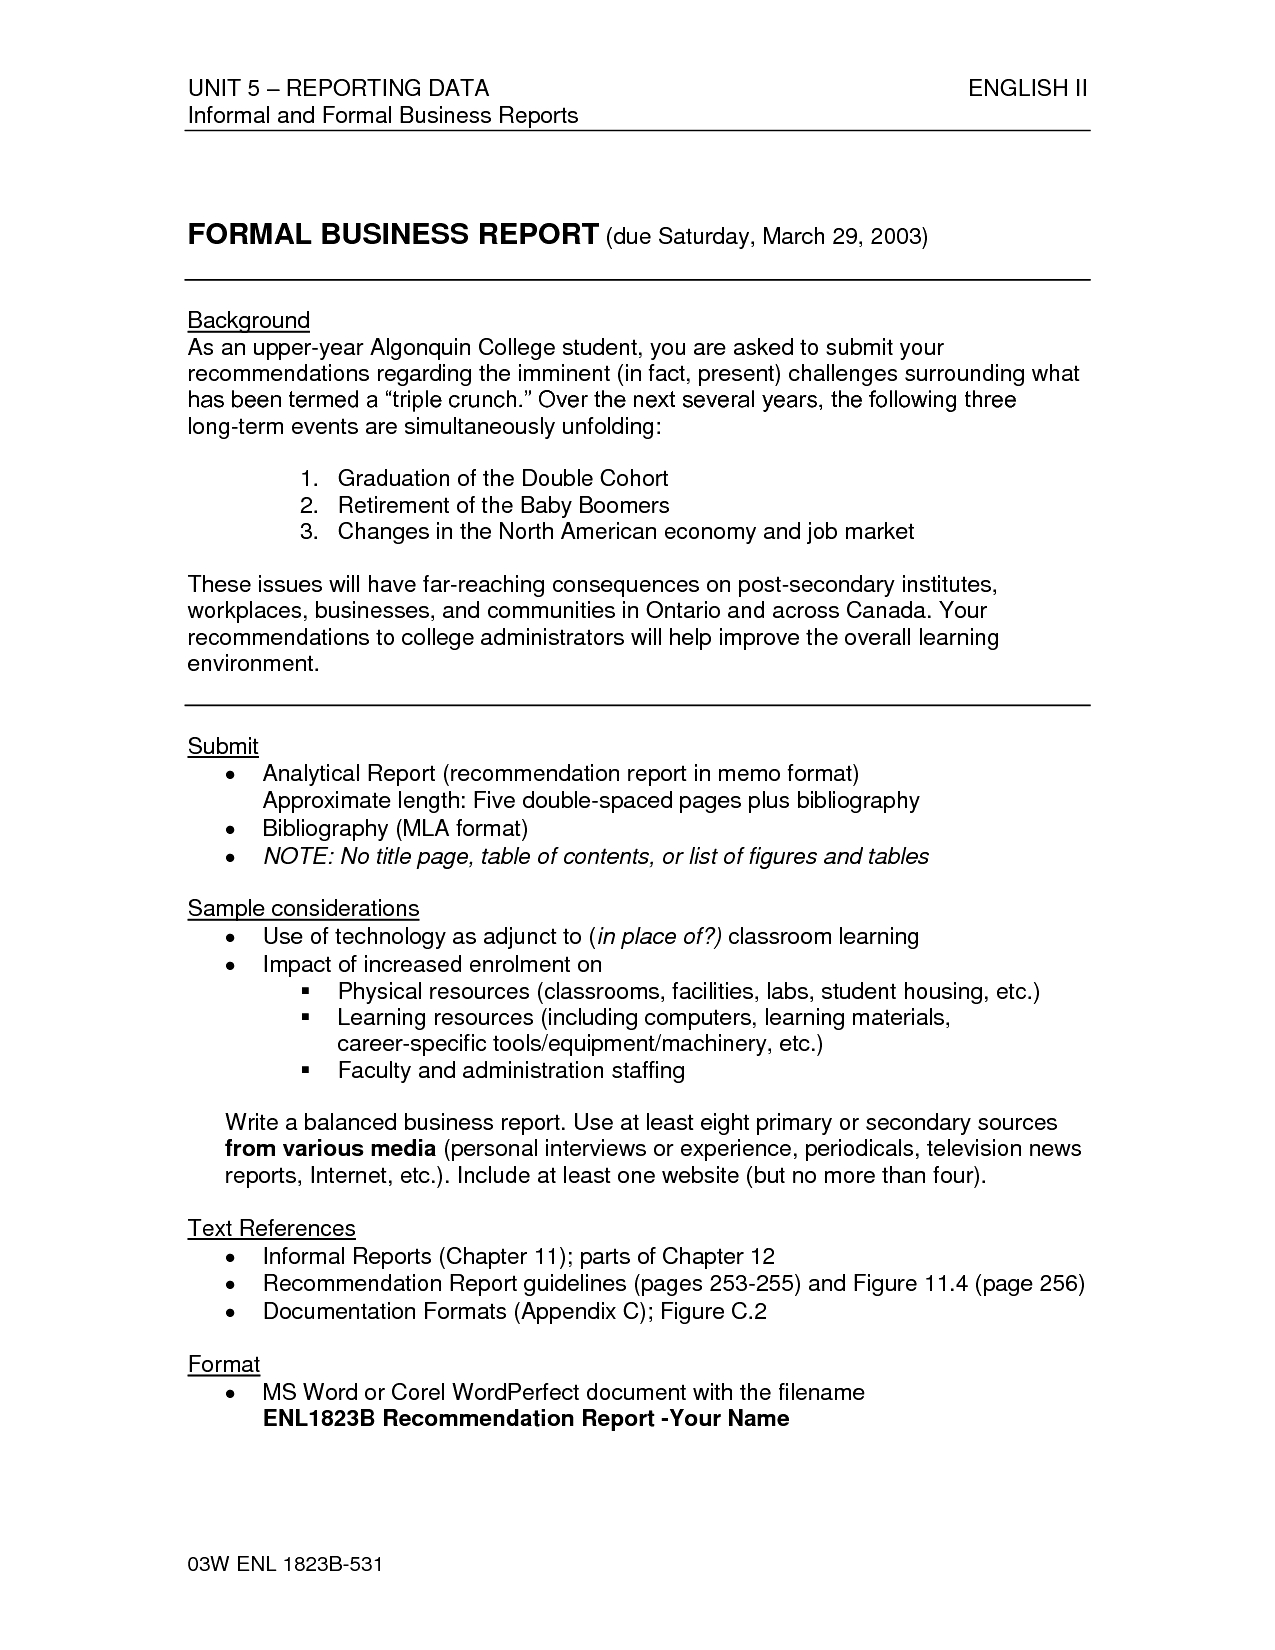 Business report format example erkalnathandedecker formal business report format example examples and forms accmission